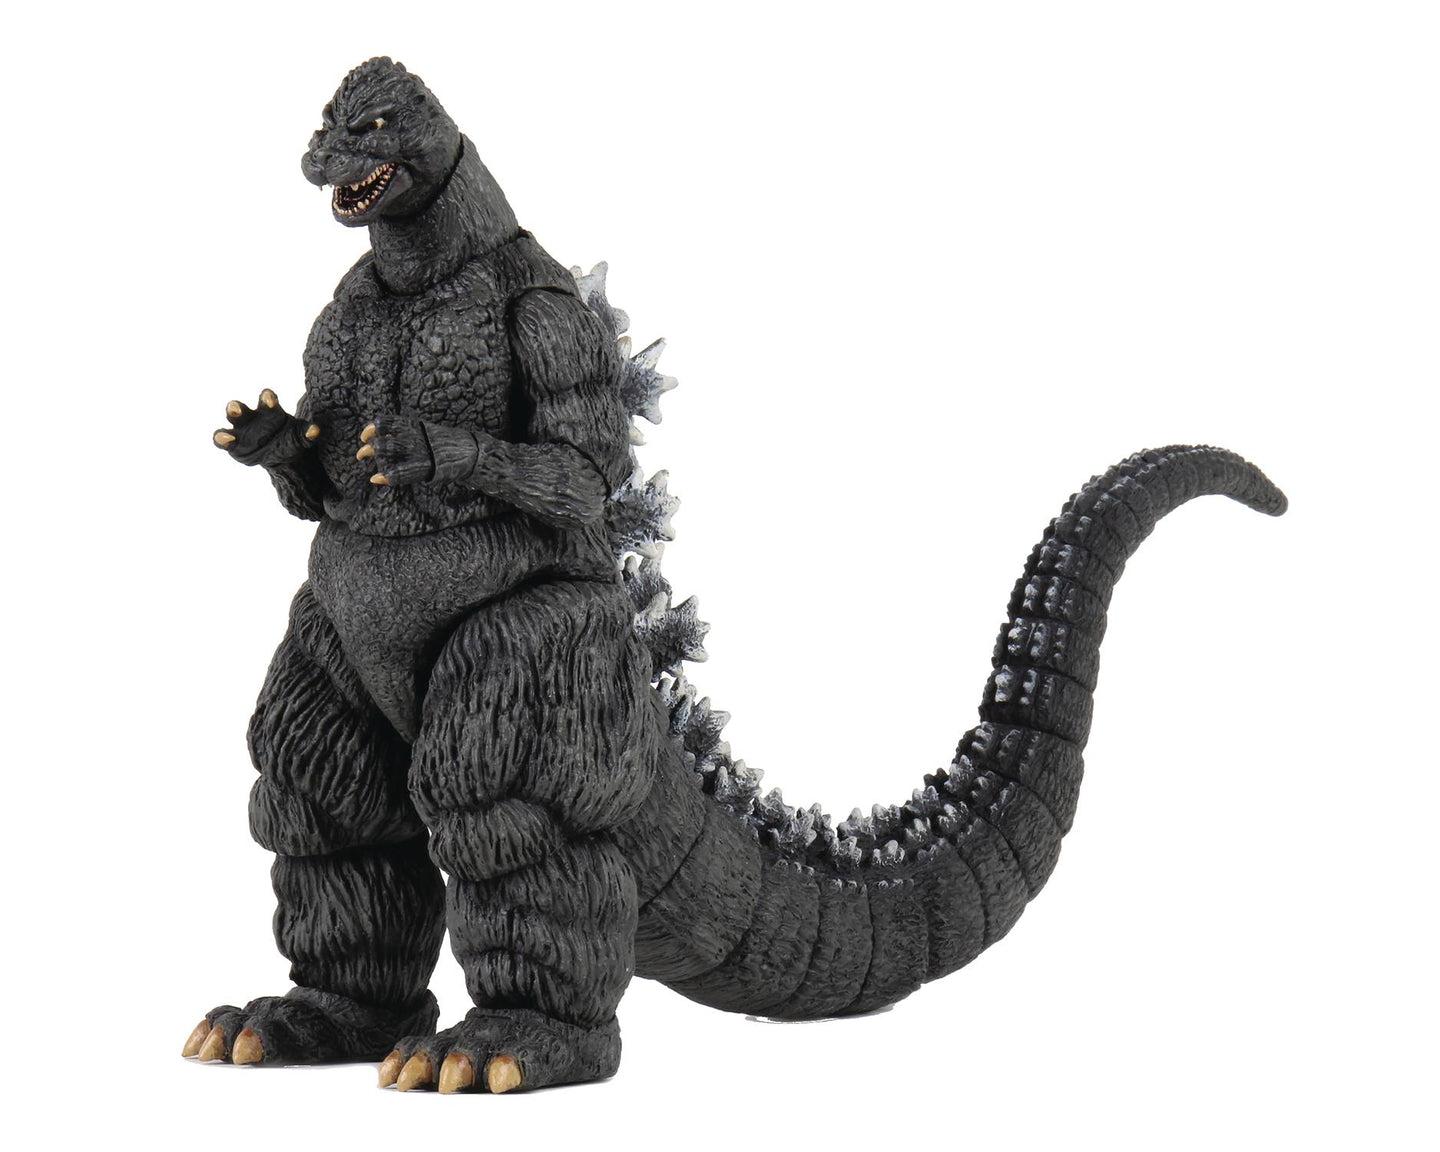 Godzilla 1989 Classic Godzilla 12 Inch Head To Tail Action Figure